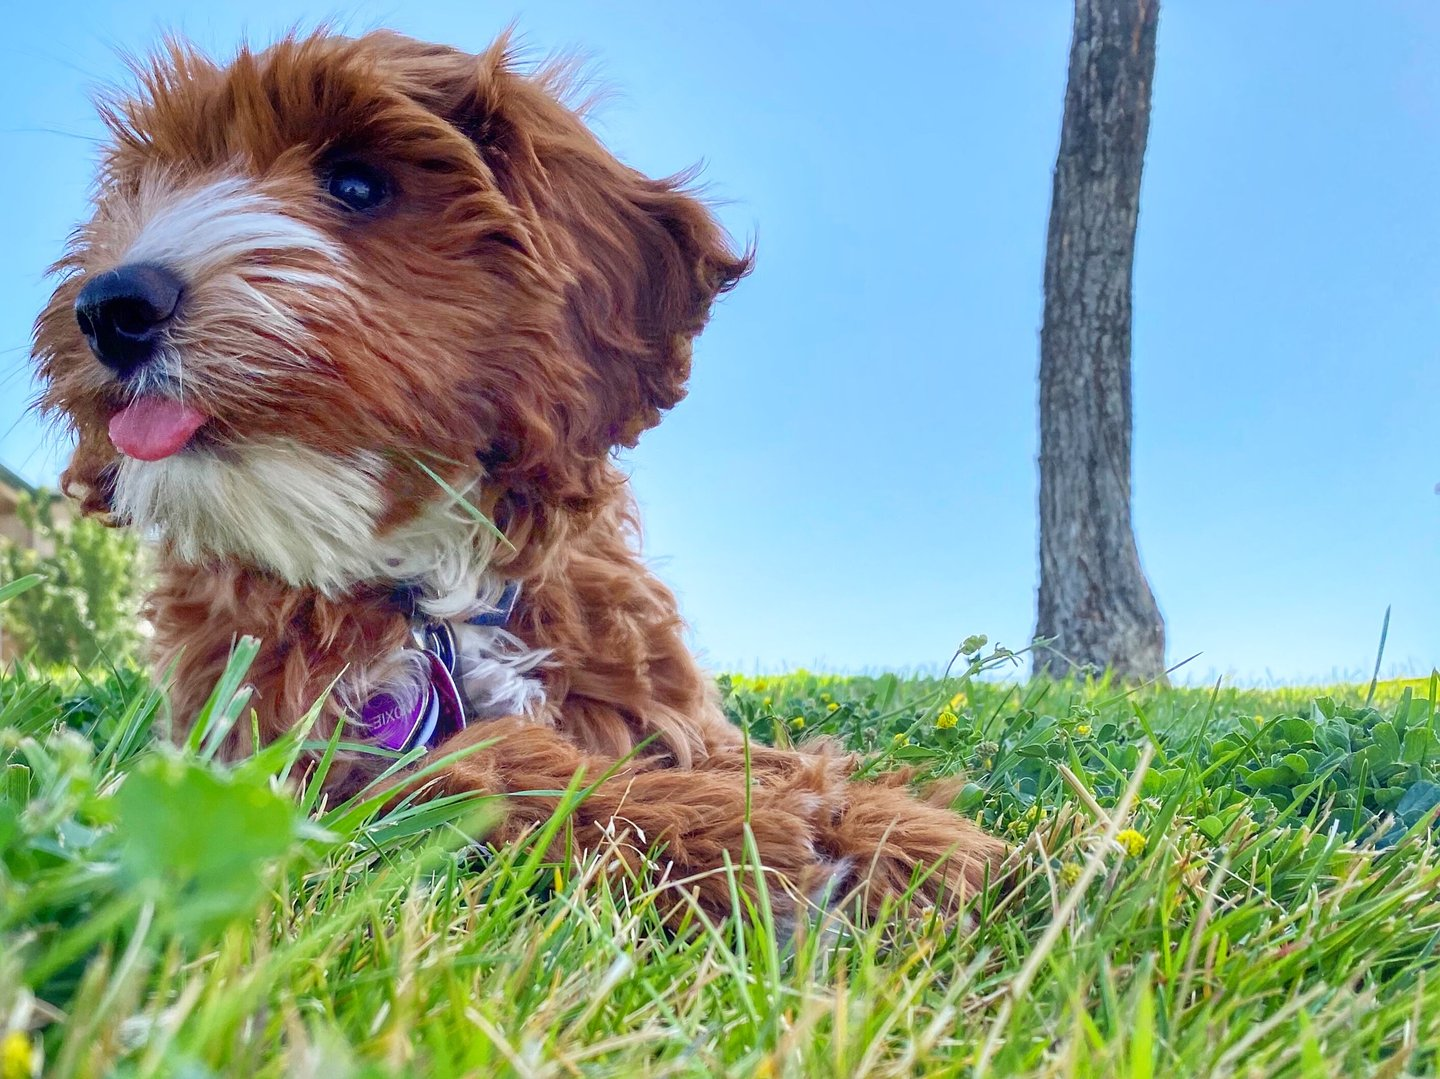 Moxie the Doodle in Costa Mesa park